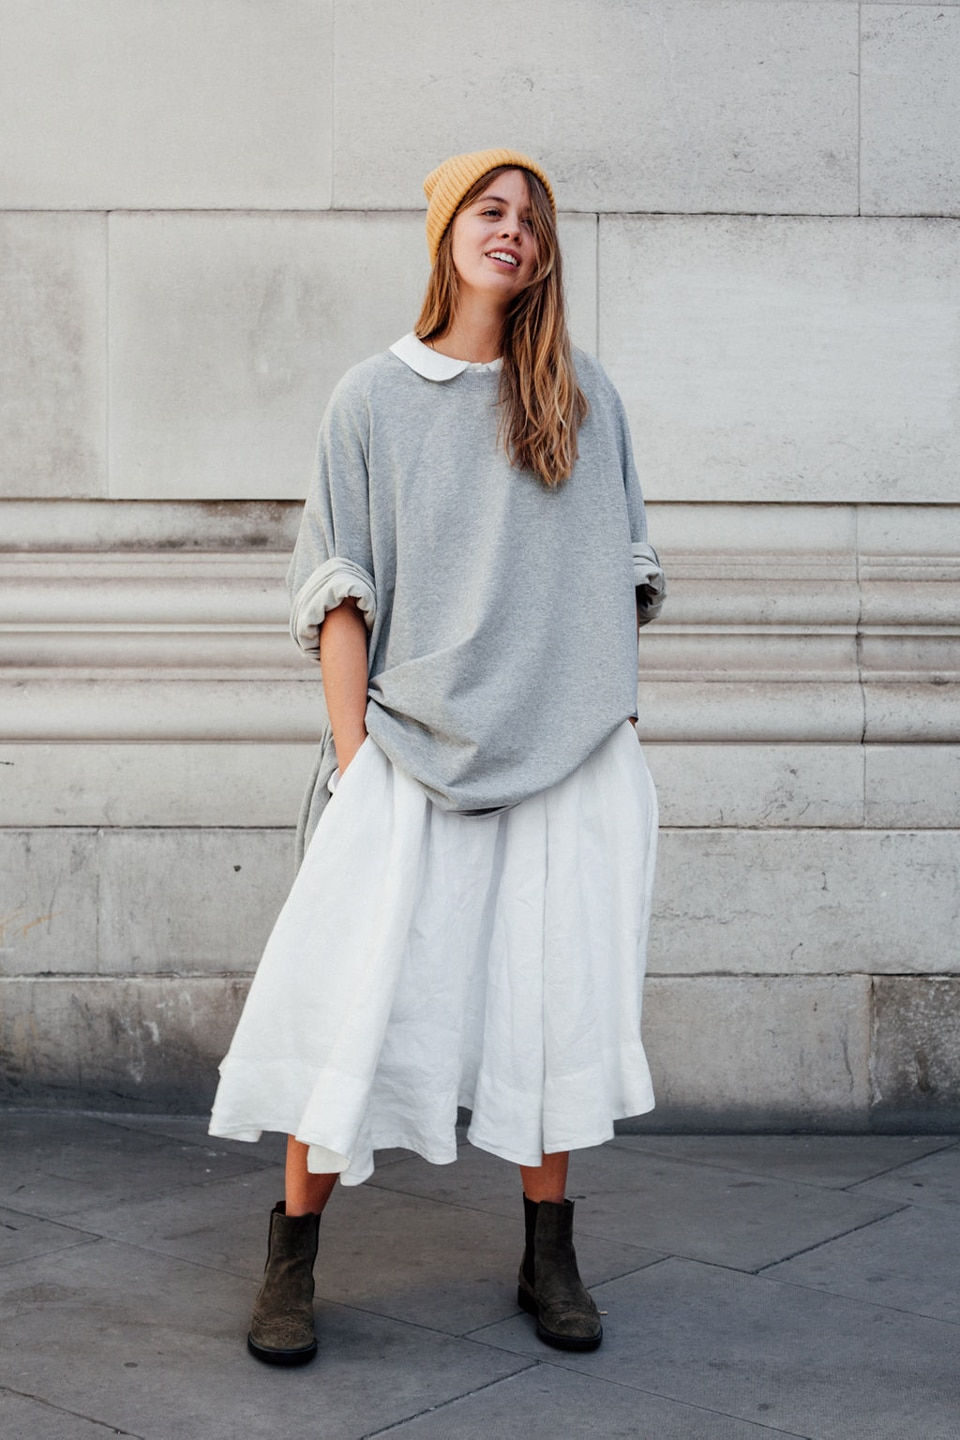 Jil wears white dress with oversized sweater